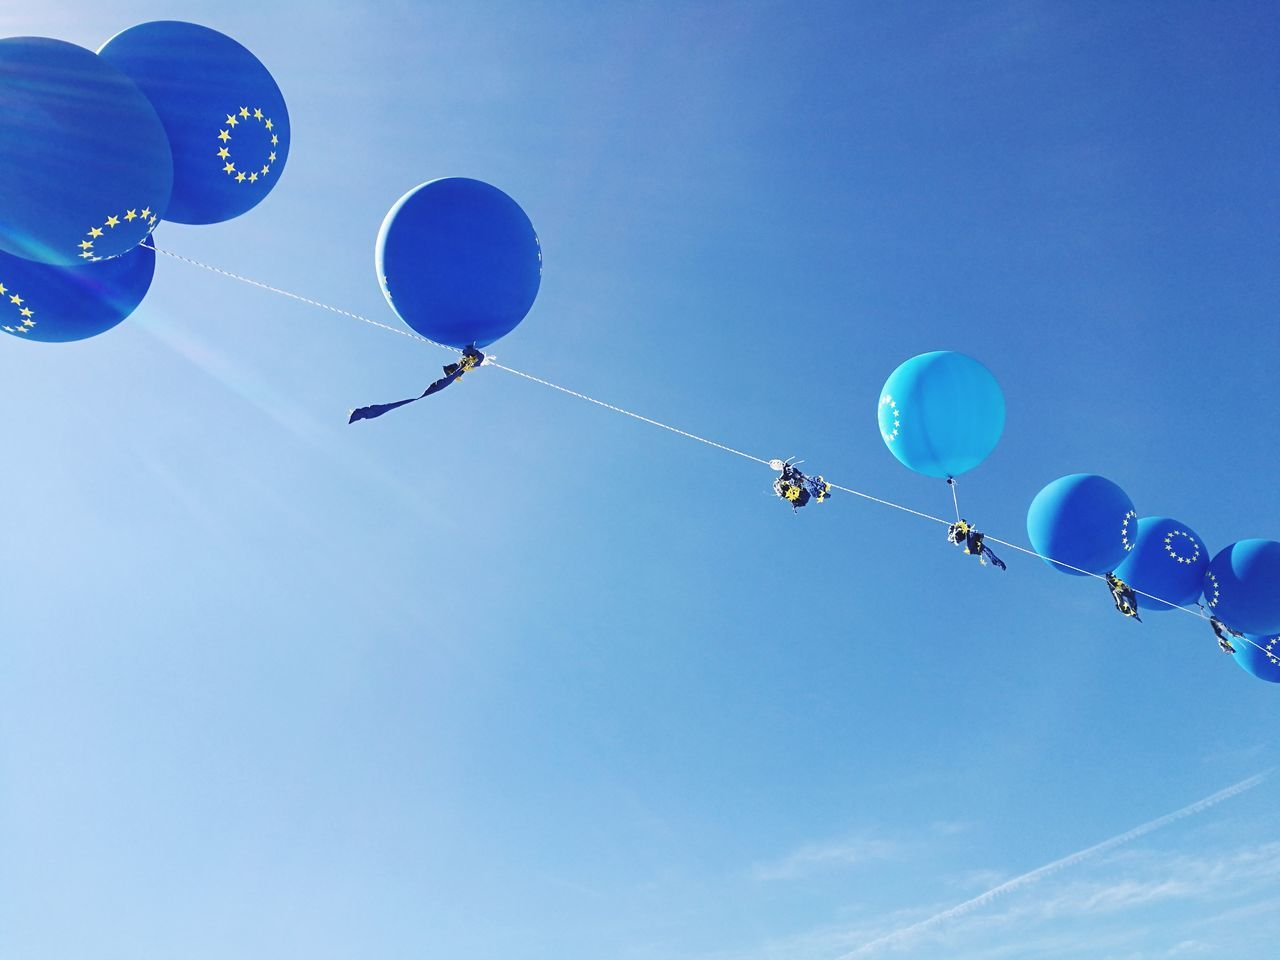 balloon, low angle view, helium balloon, celebration, mid-air, helium, flying, blue, multi colored, party - social event, outdoors, day, sky, hot air balloon, ballooning festival, no people